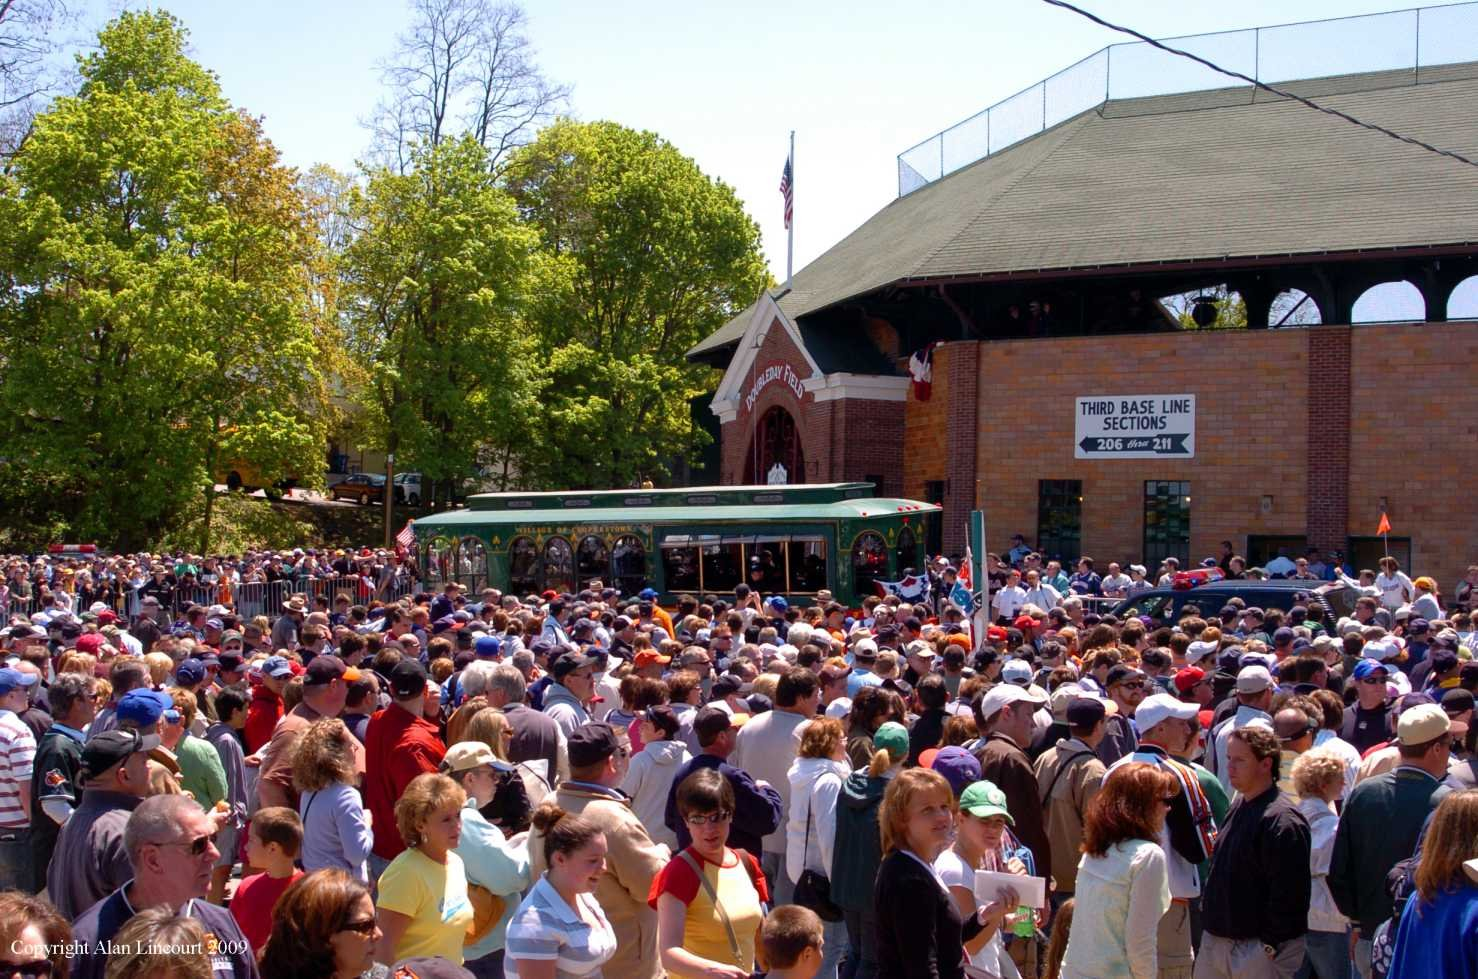 Photo by Alan Lincourt. A crowd packs the outside area and parking lot to Doubleday Field.